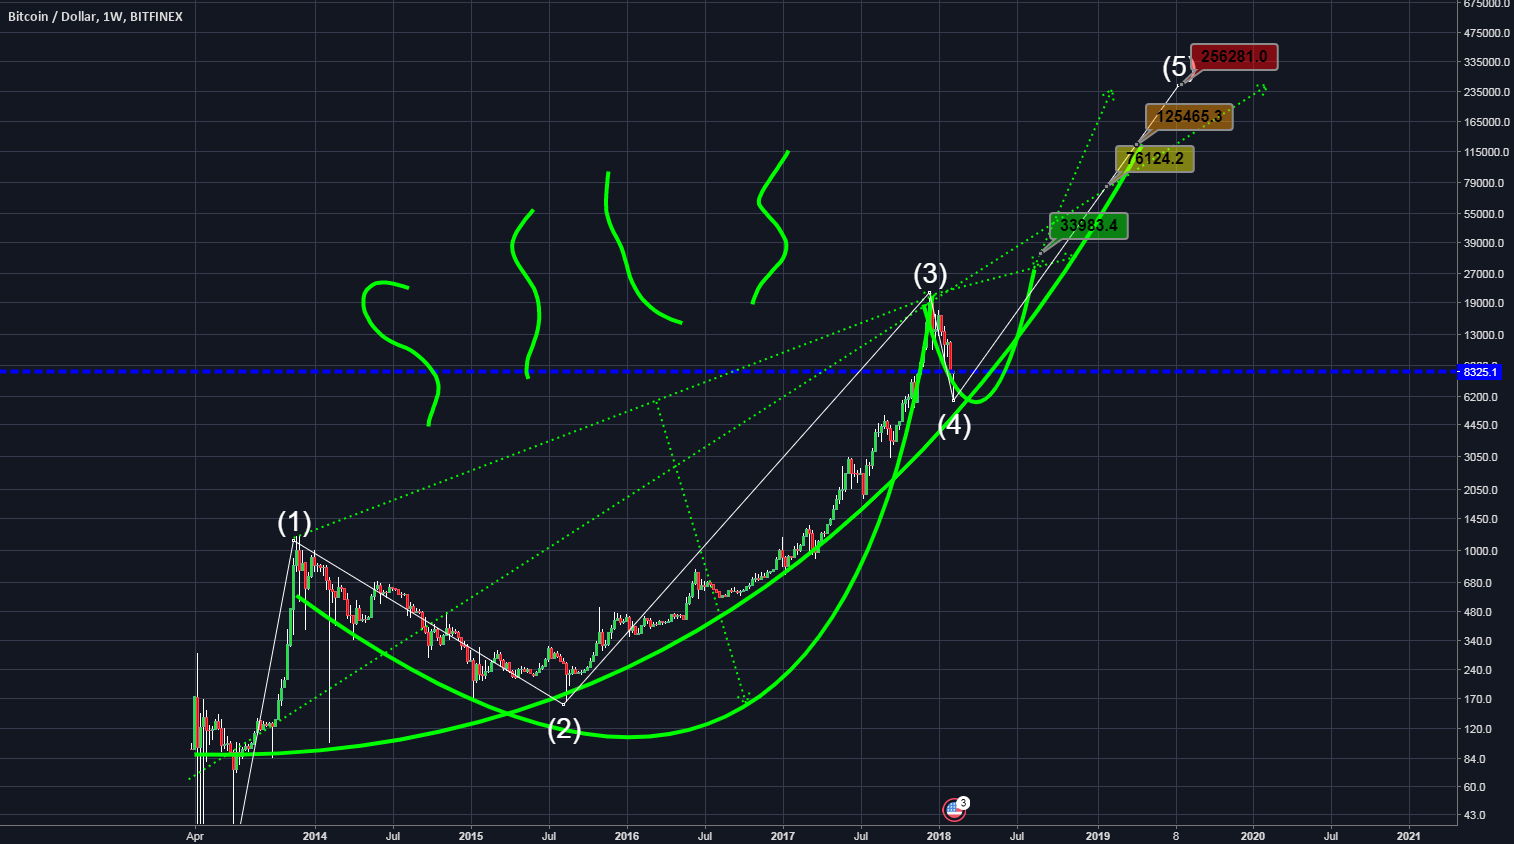 BTC forming C&H aiming 250K USD for 2020